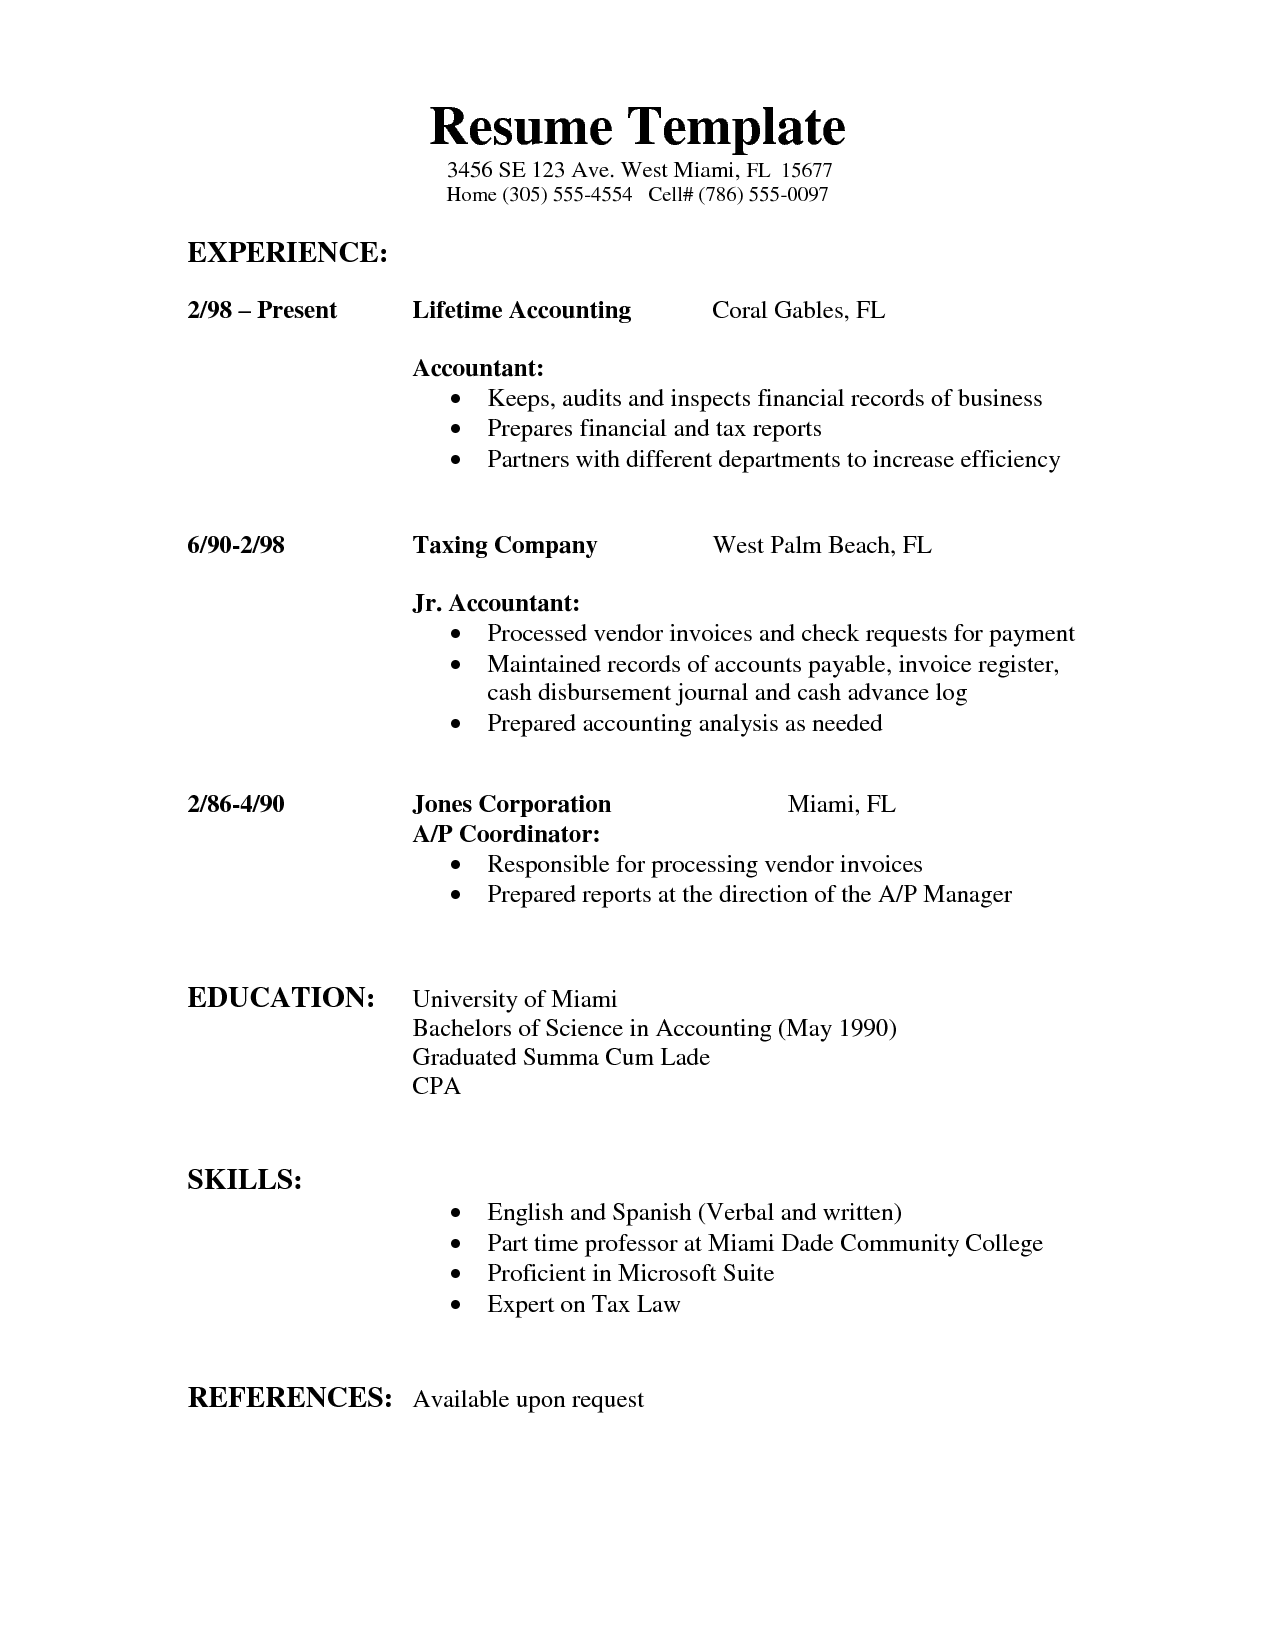 Sample Resume For Mba Admission Resumes Resume Examples Projects To Try Pinterest